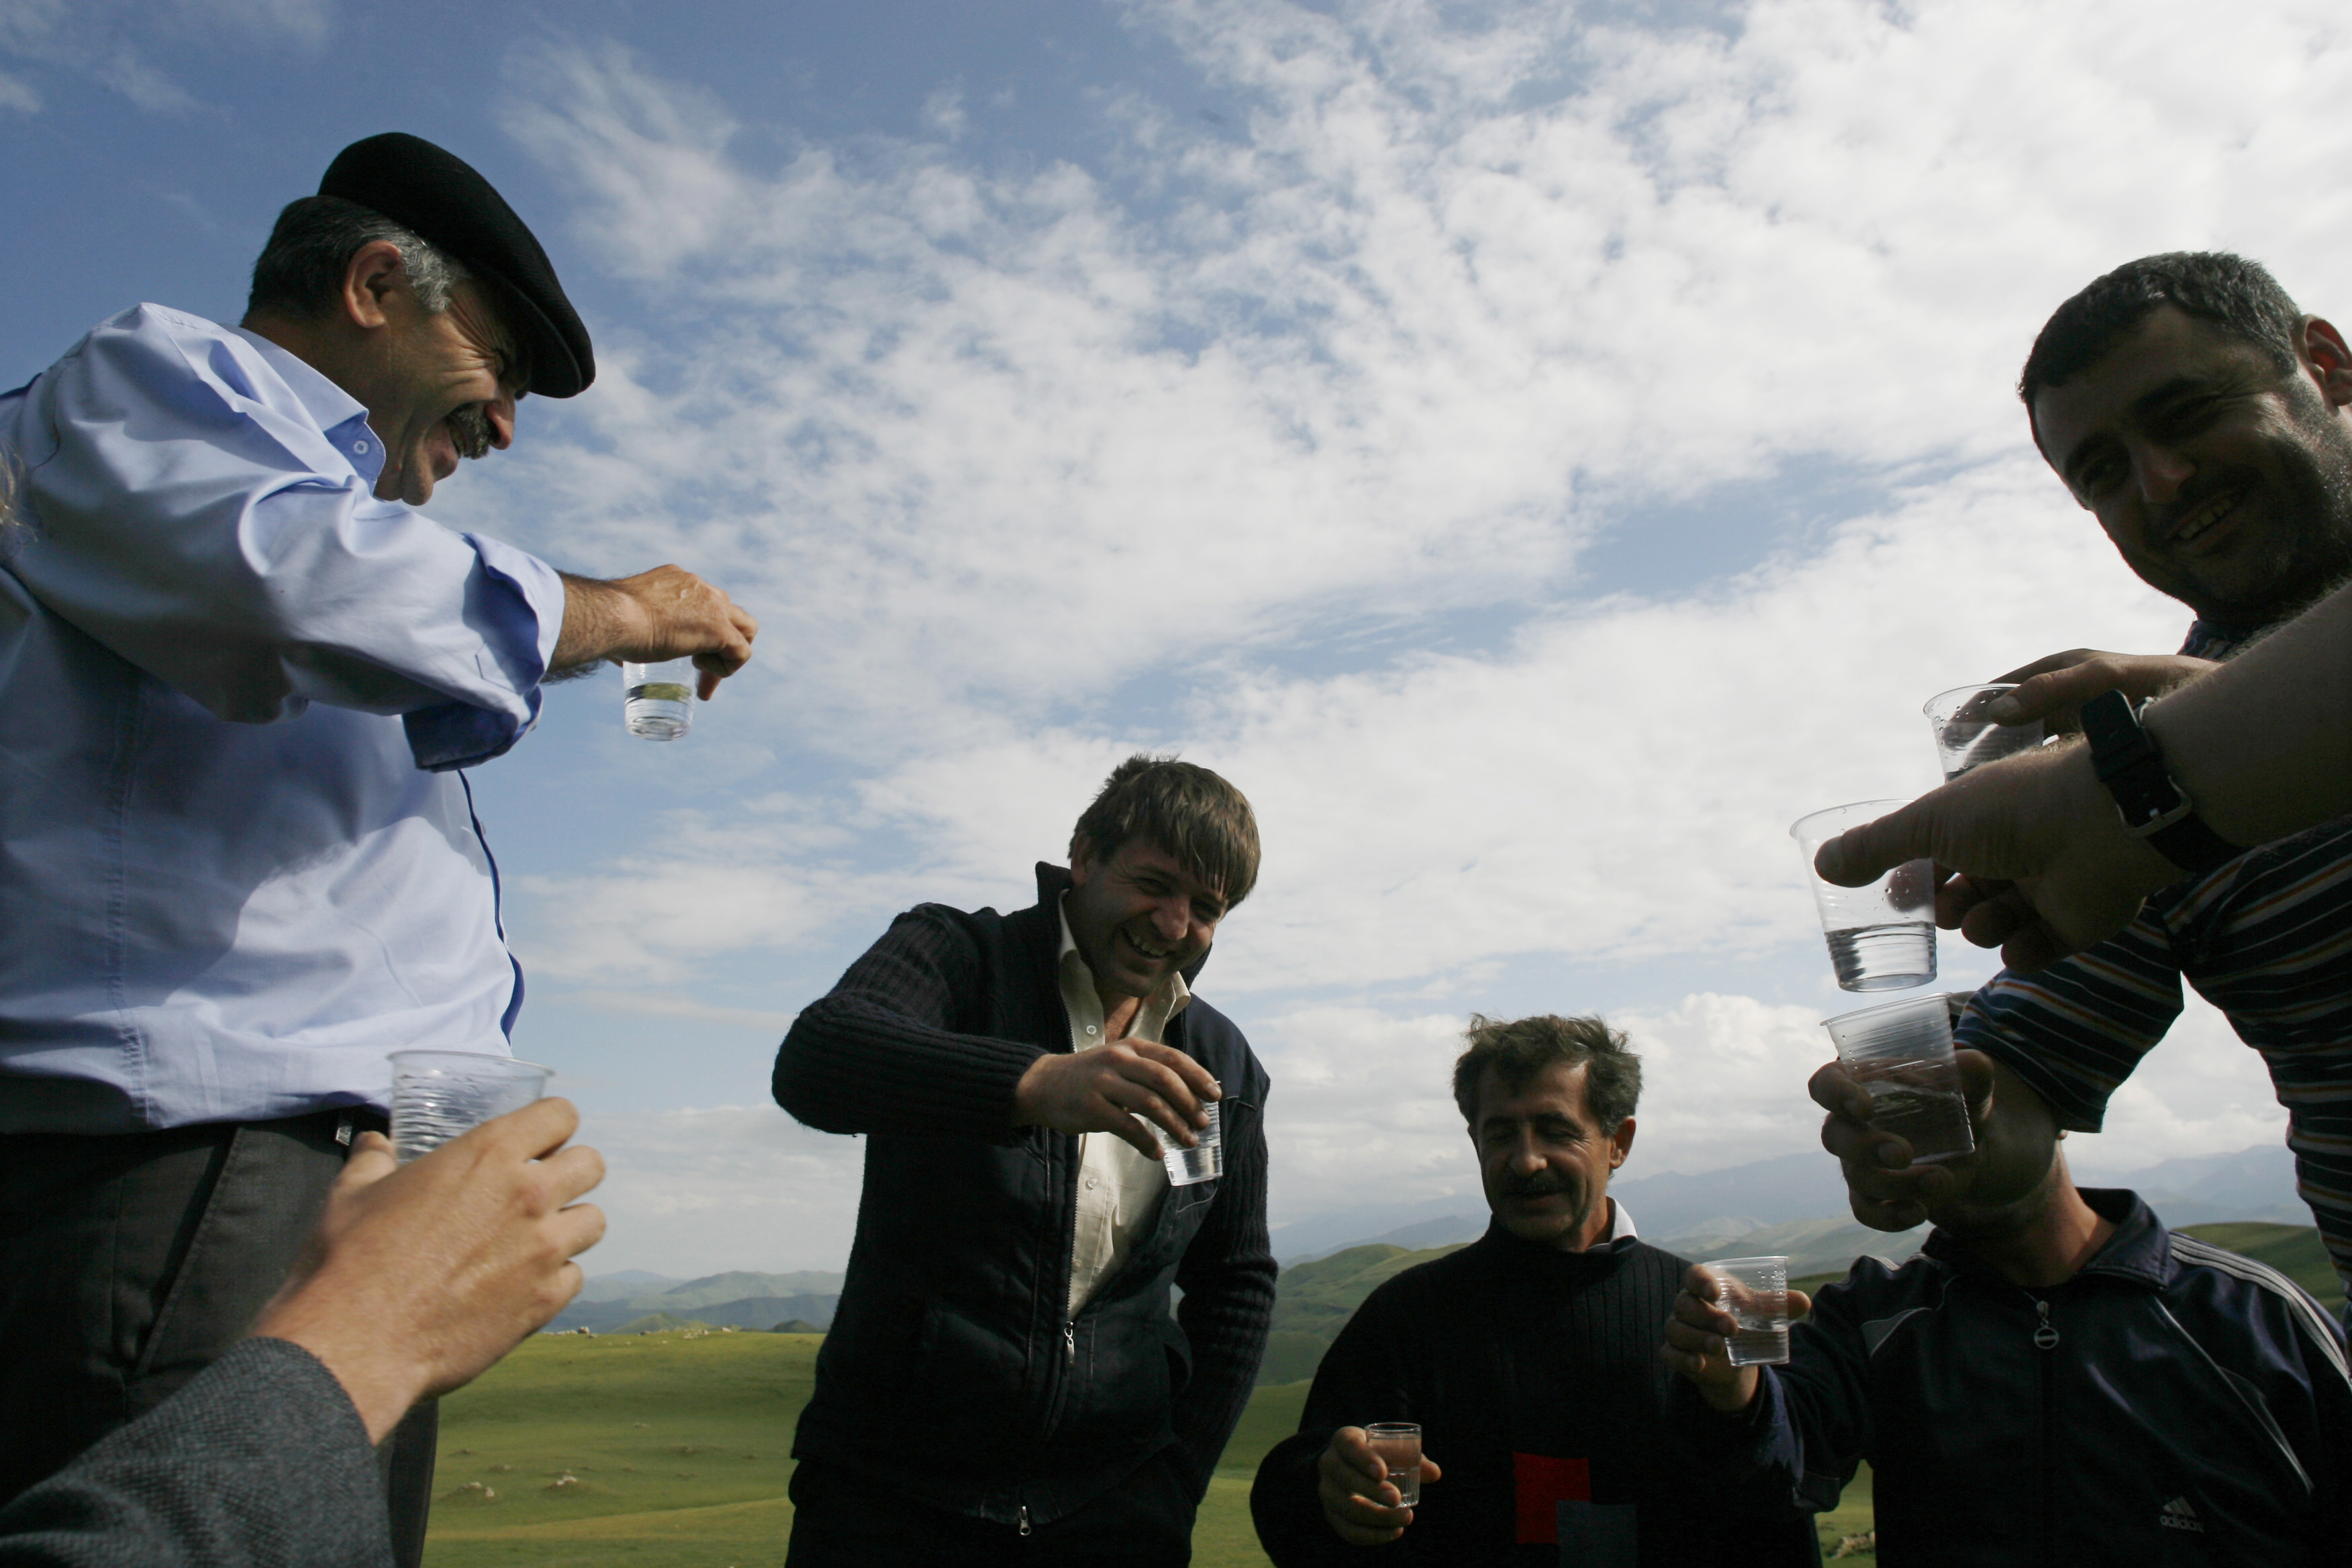 Men drink vodka near the remote mountain village of Tsovkra-1, some 3,000 metres above sea level in Russia's Caucasus region of Dagestan August 20, 2007. For children in this remote mountain village on Russia's southern fringe, after-school games means balancing on a wire suspended one storey above ground. By a quirk of history that goes so far back that in time no one really remembers, nearly every man, woman and child in Tsovkra-1 can walk the tightrope. Picture taken August 20, 2007. To match feature RUSSIA-DAGESTAN/TIGHTROPE REUTERS/Thomas Peter (RUSSIA) - RTR1T7PW